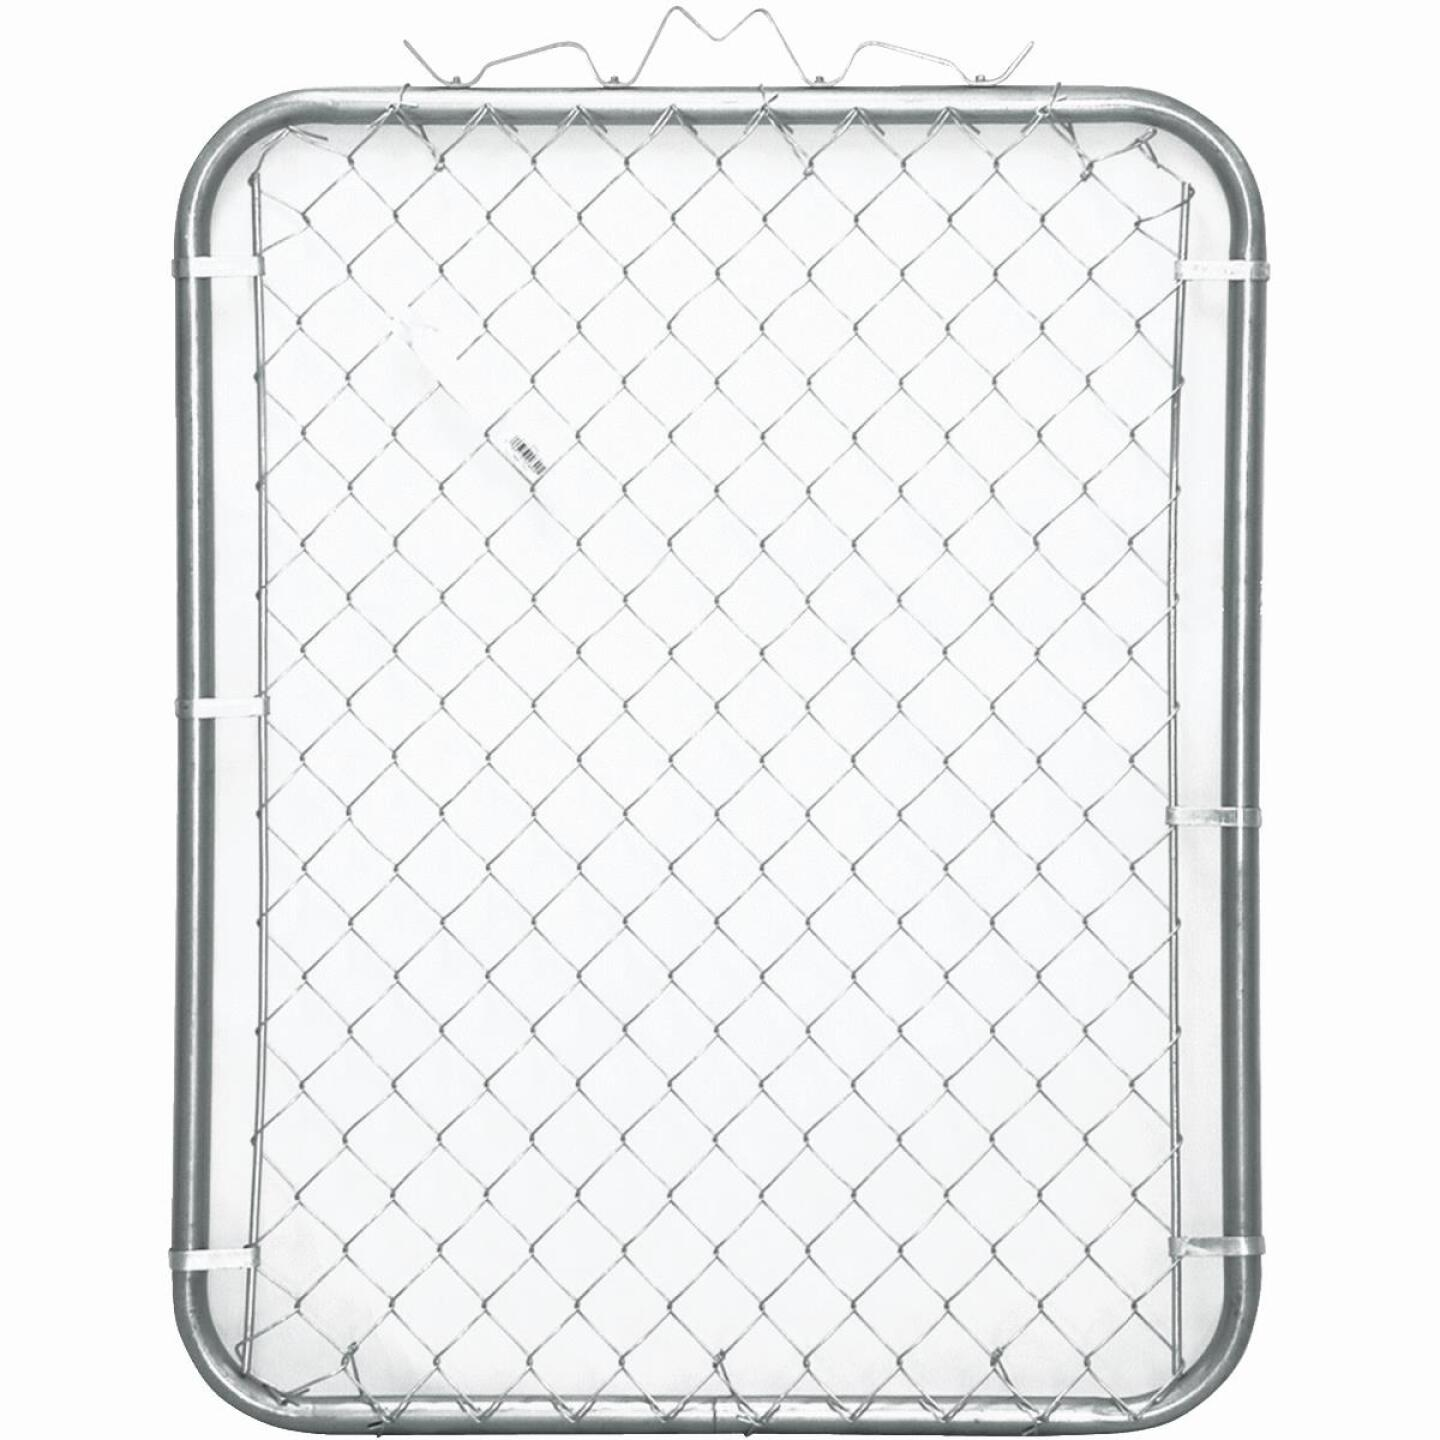 Midwest Air Tech Single Walk 35 In. W. x 46 In. H. Chain Link Gate Image 1